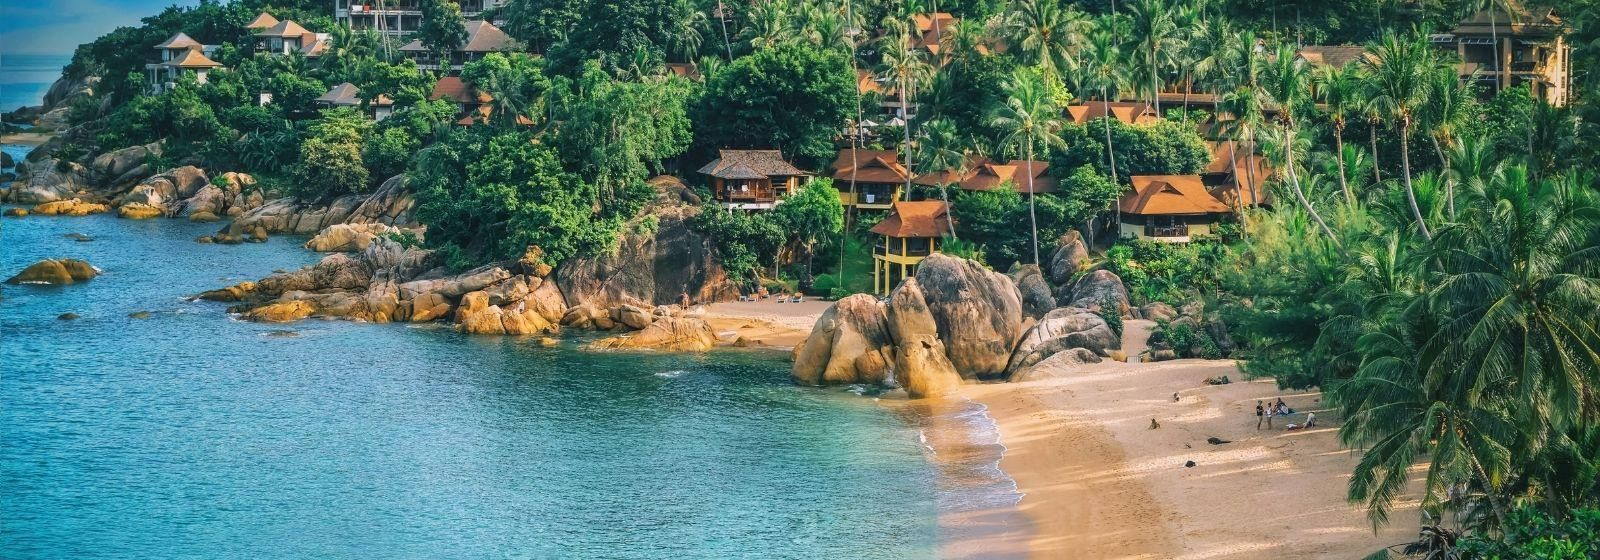 THE TOP 10 Things To Do in Koh Samui   Attractions & Activities